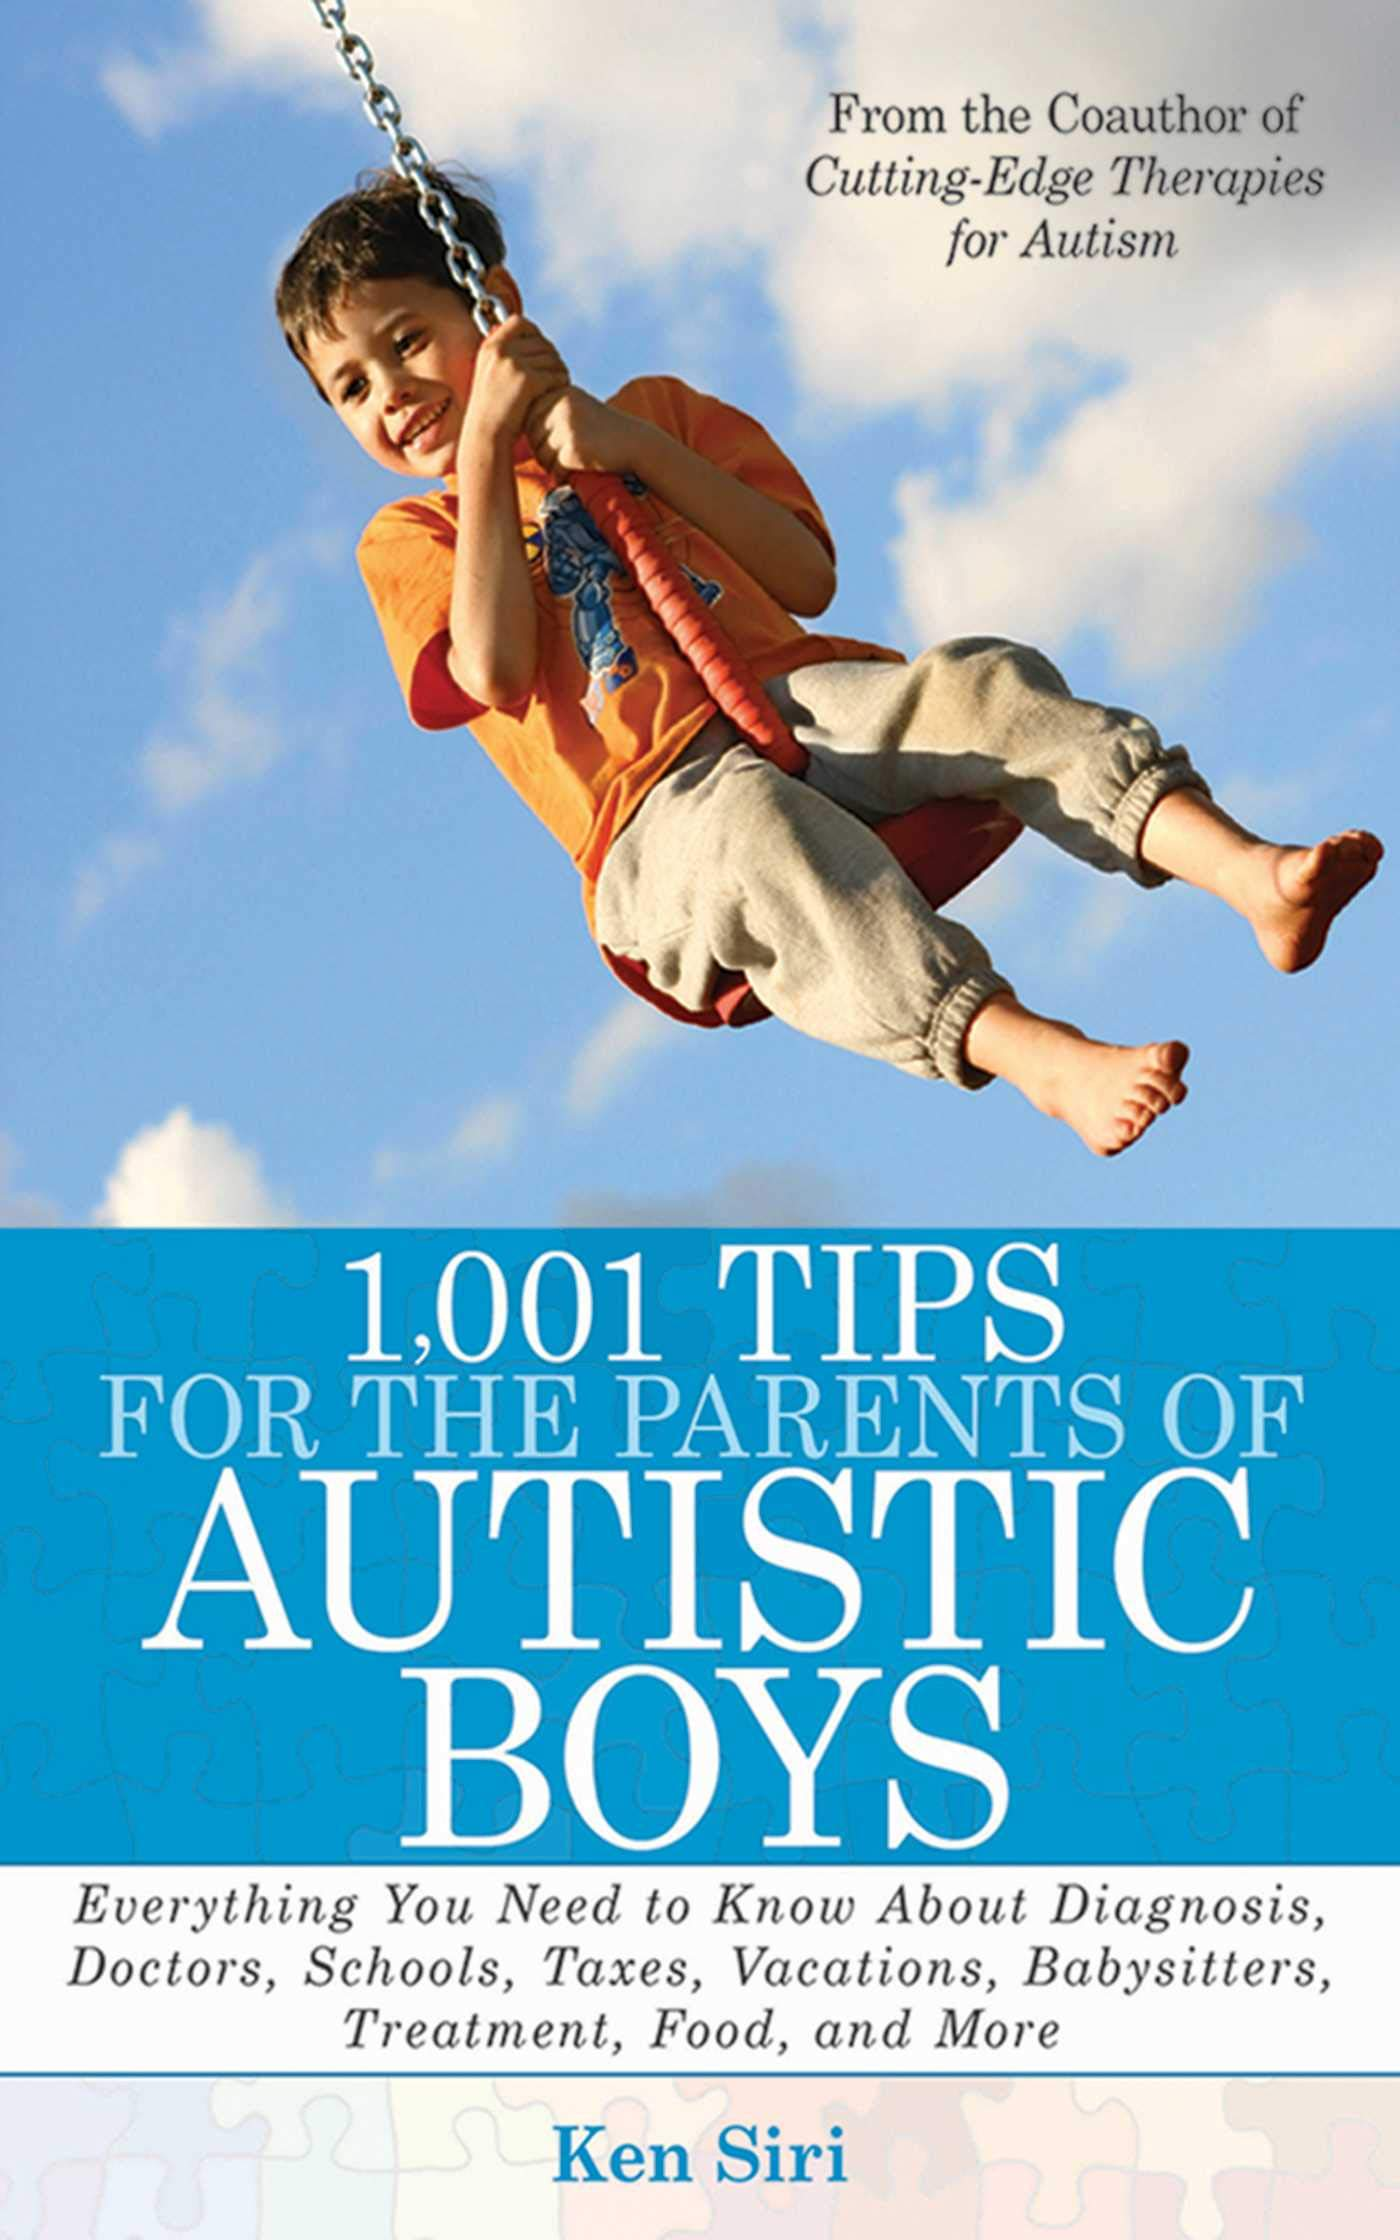 1,001 Tips for the Parents of Autistic Boys: Everything You Need to Know About Diagnosis, Doctors, Schools, Taxes, Vacations, Babysitters, Treatments, Food, and More by Skyhorse